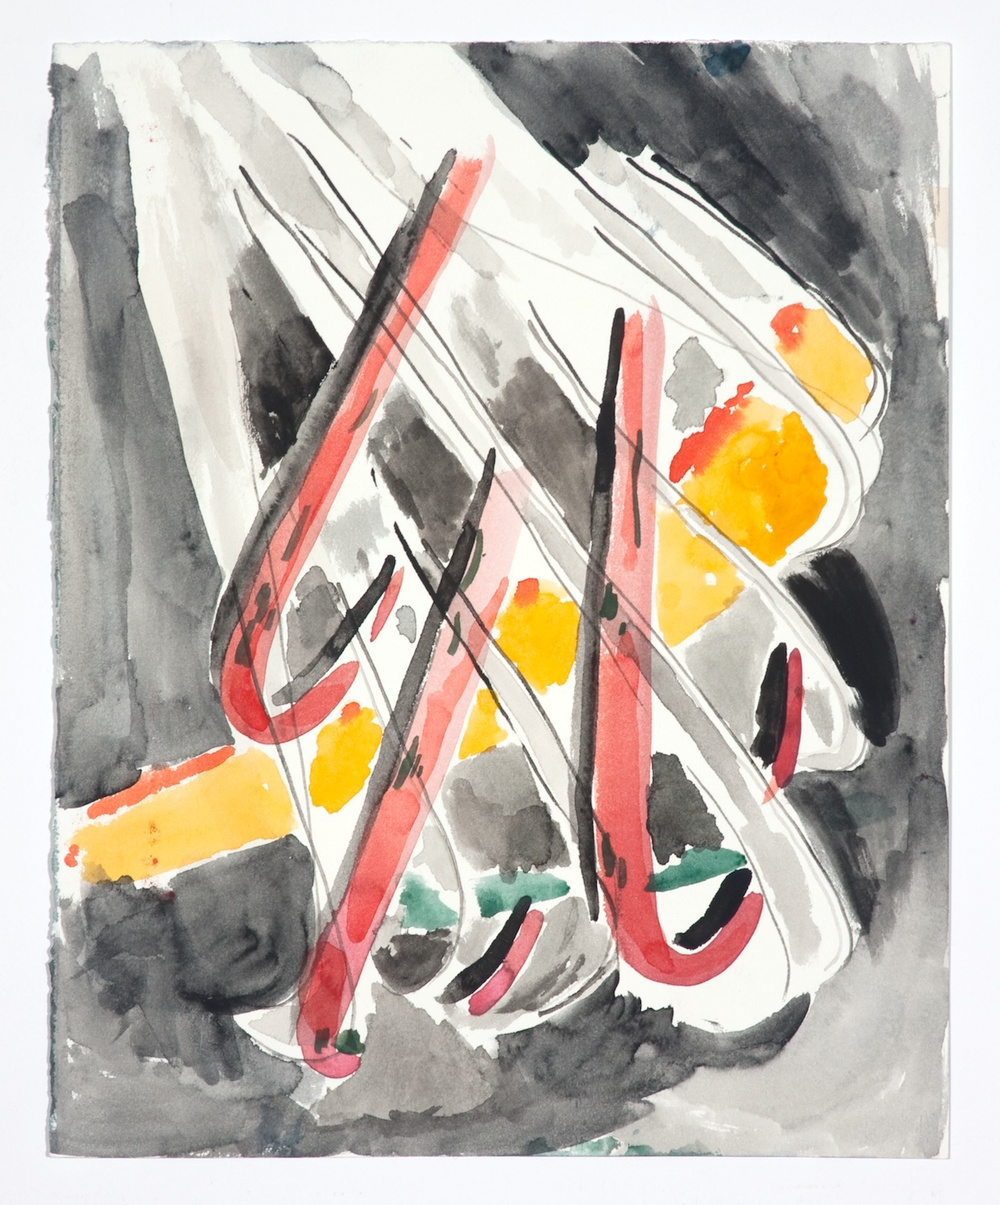 Jon Pestoni  Untitled  2009 Gouache on paper 14h x 11 ¼w in JP053